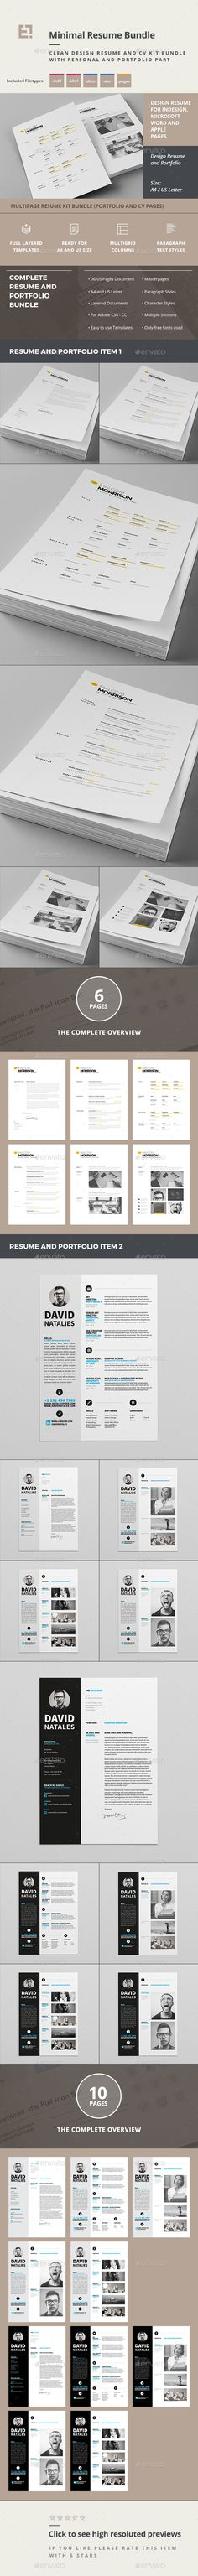 Resume Booklet Design  Pages  Booklet Design Indesign